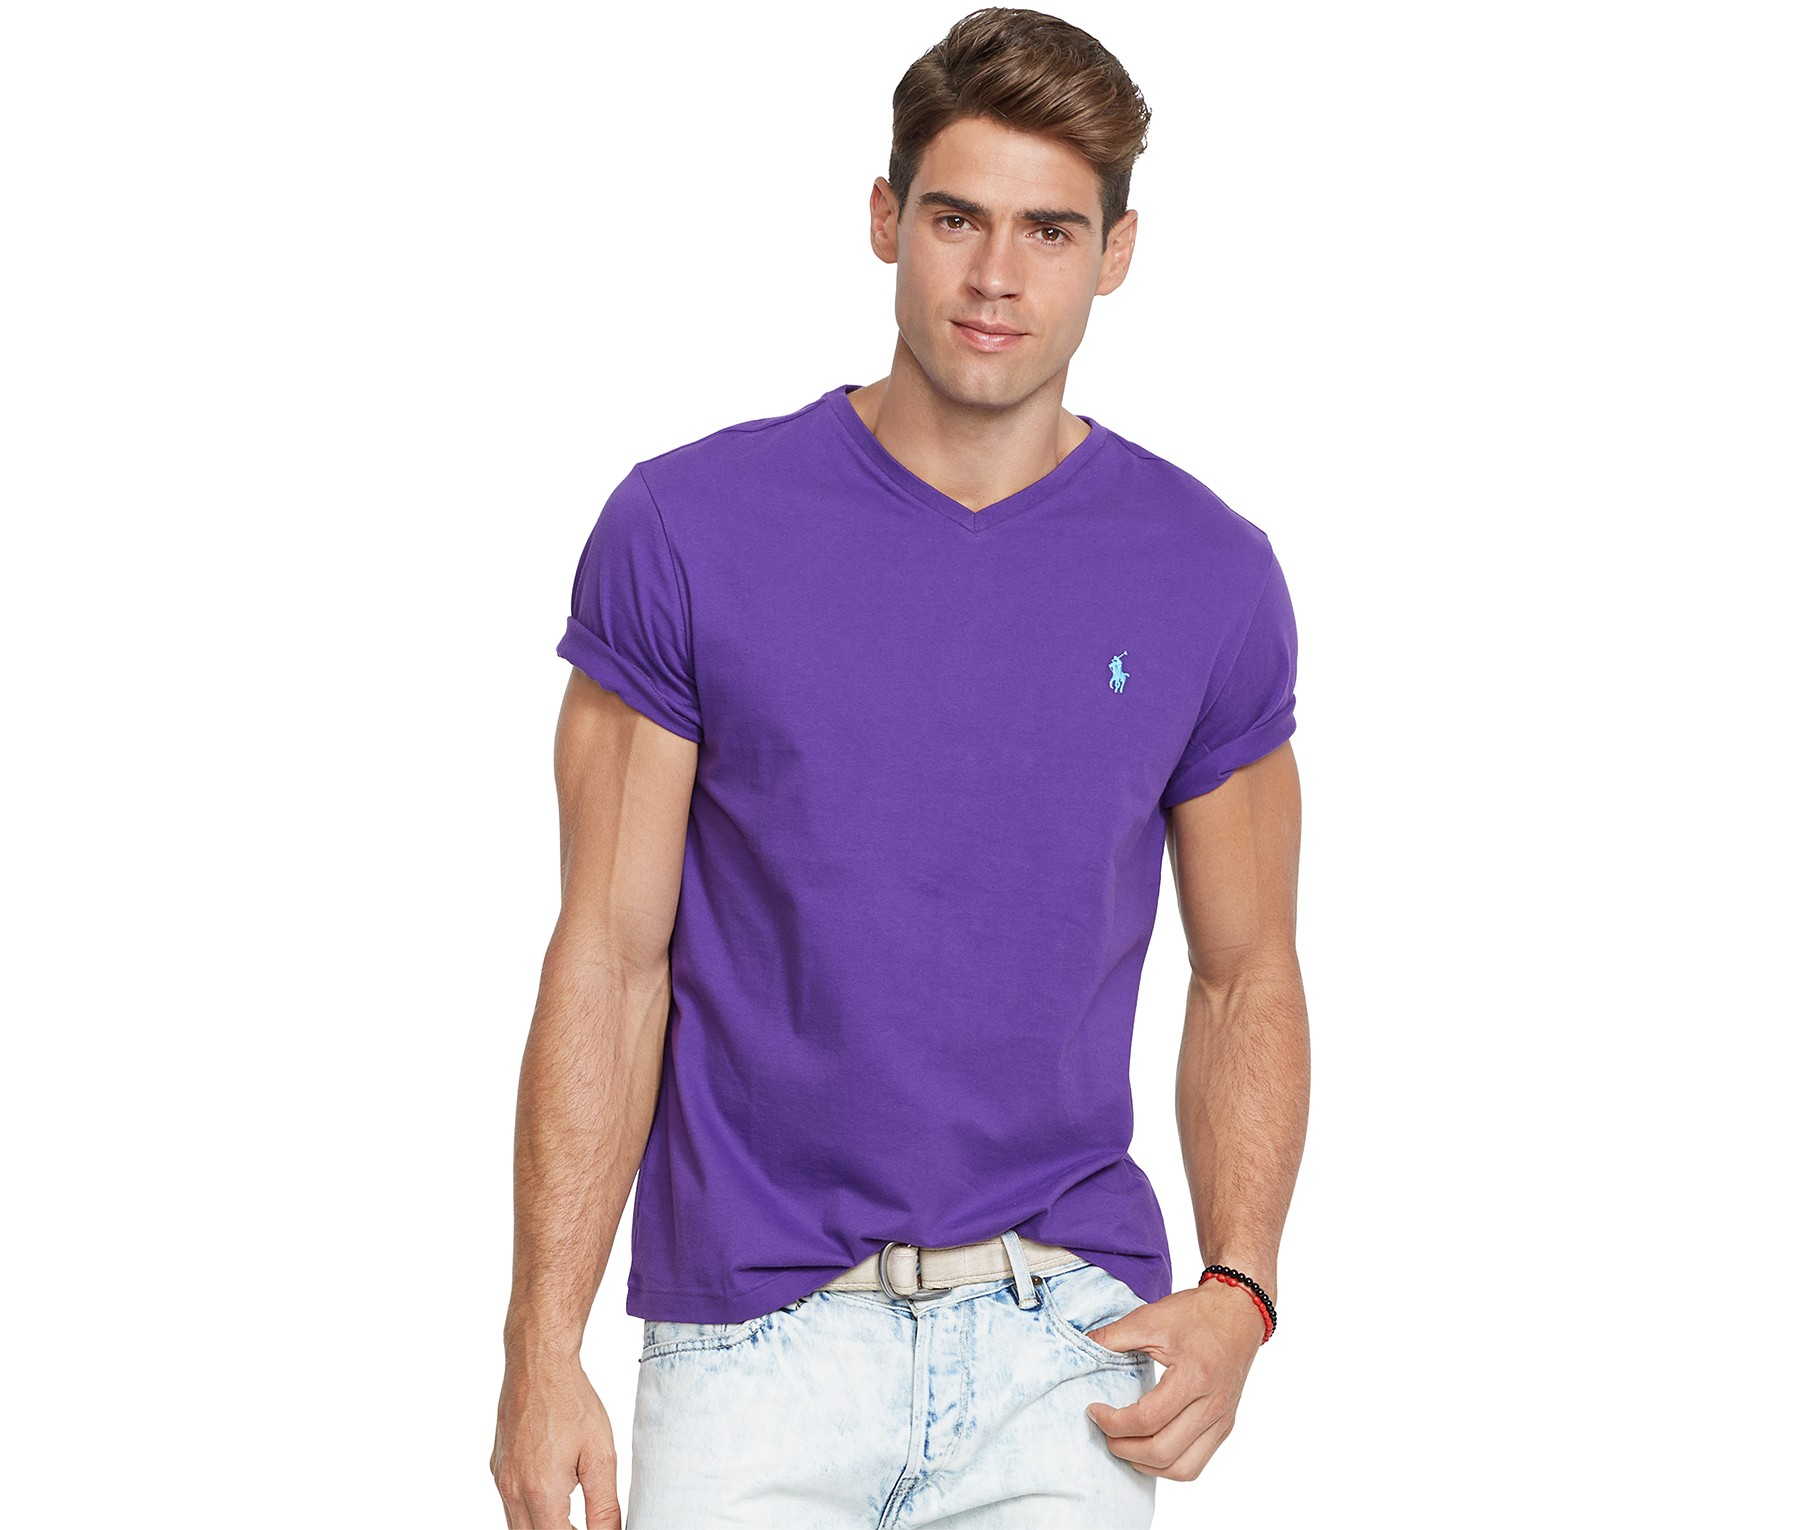 polo ralph lauren jersey v neck t shirt purple blingby. Black Bedroom Furniture Sets. Home Design Ideas